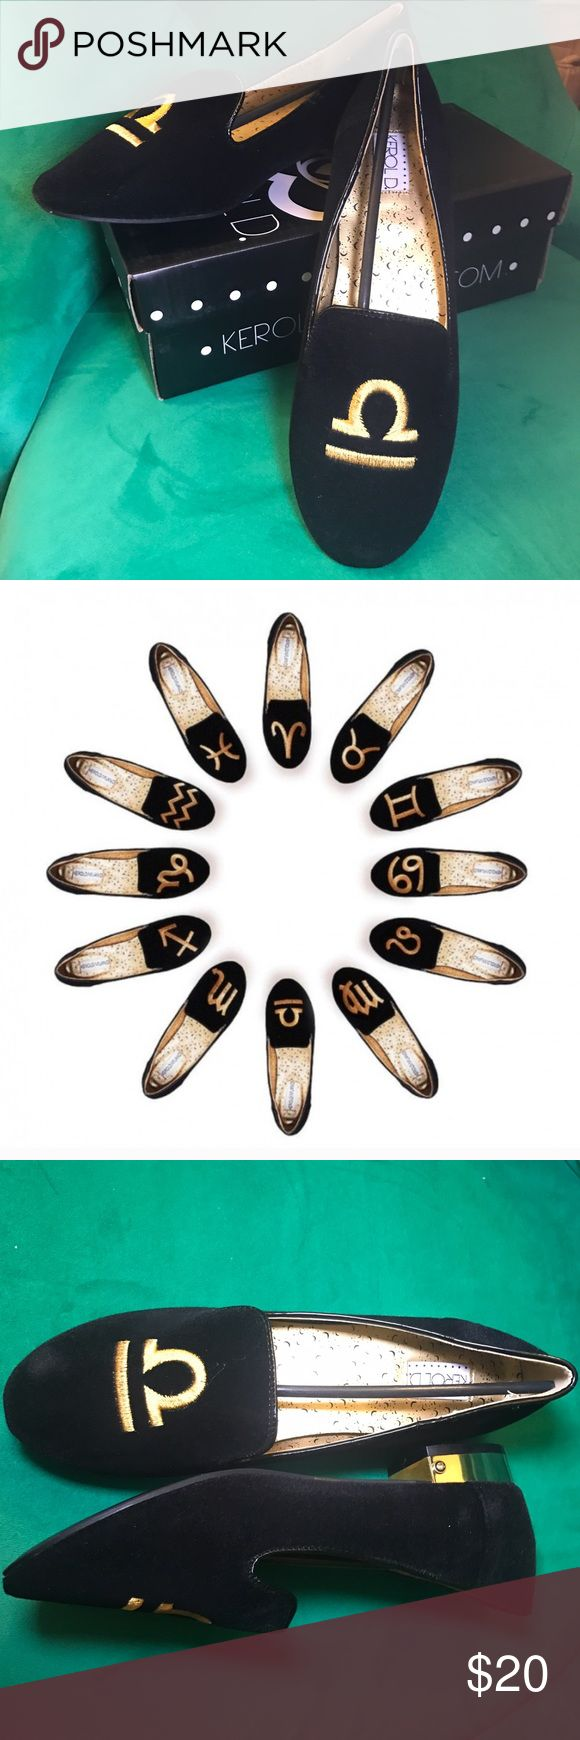 """$20 BOGO ♎️ Libra ♎️ Zodiac Velvet Flats What do Gwenyth Paltrow, Kate Winslet and YOU all have in common? They all were born as a Libra! Show everyone how balanced you are with these awesome new flats. New in Box! Euro Sz. 40, but they run small & fit like an 9-9.5. I wouldn't recommend these for narrow feet. Any items labeled """"BOGO $20 😵"""" are part of my Buy One, Get One Free Closet Sale. Simply bundle two $20 items and offer $20 - I will accept! That's two items for the price of one 💕…"""